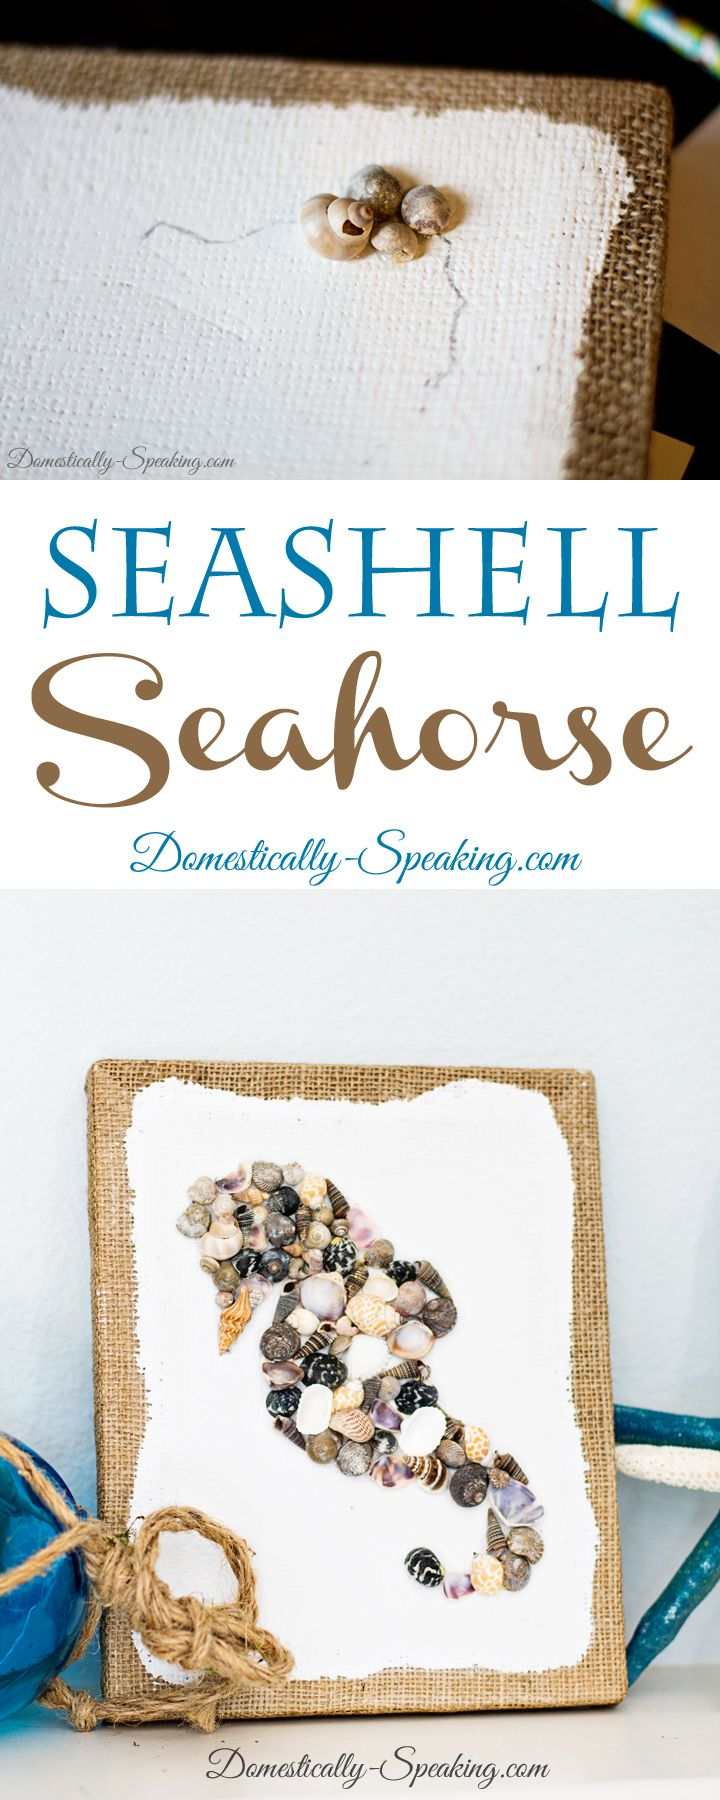 Nautical crafts to make - Diy Seashell Seahorse Craft